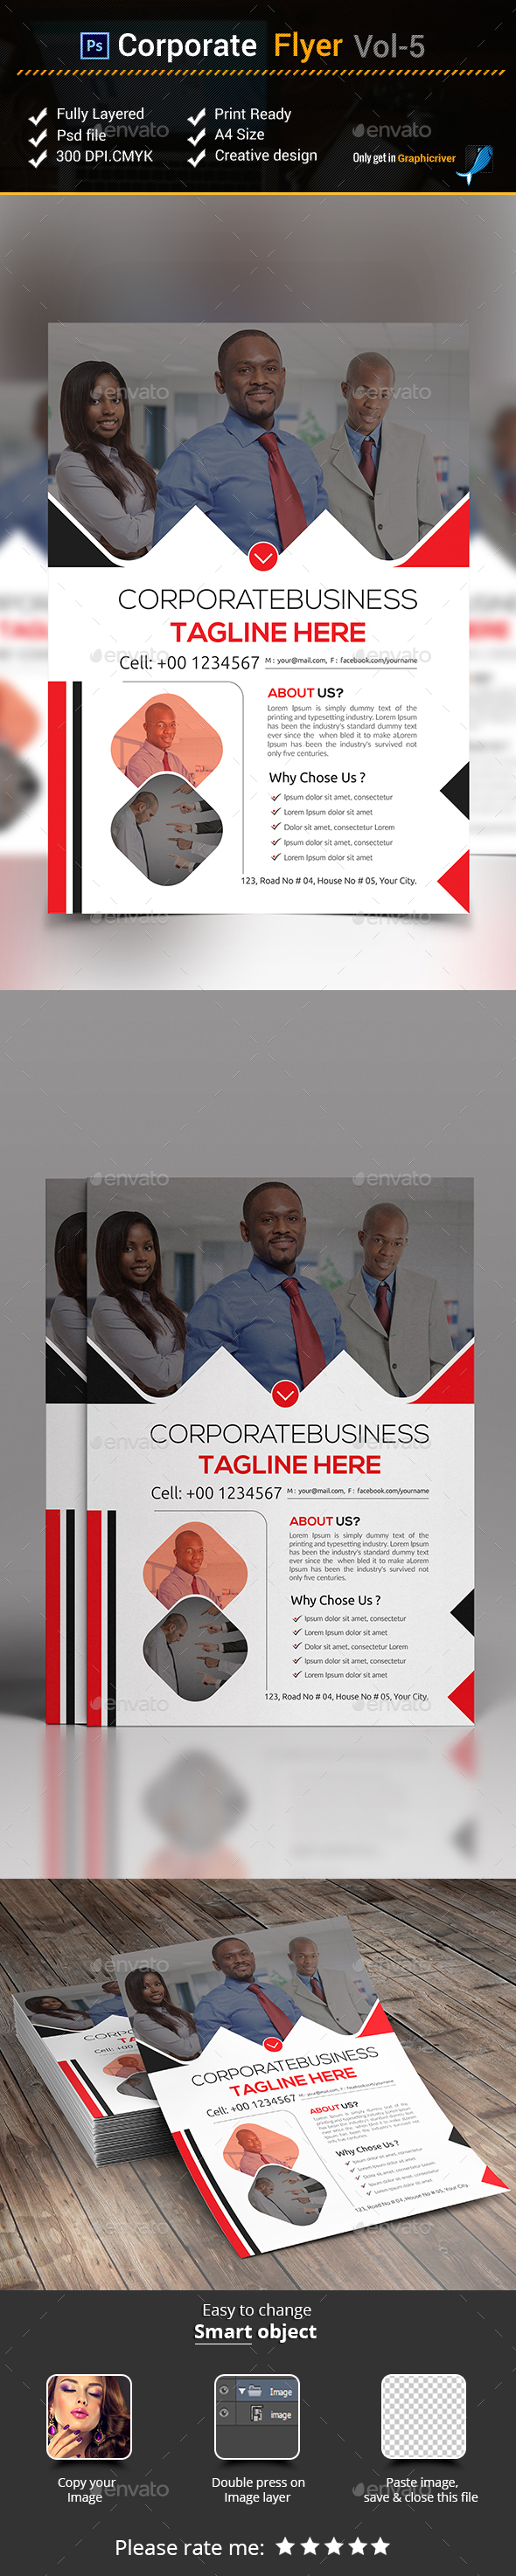 Corporate Flyer Vol- 5 - Corporate Flyers